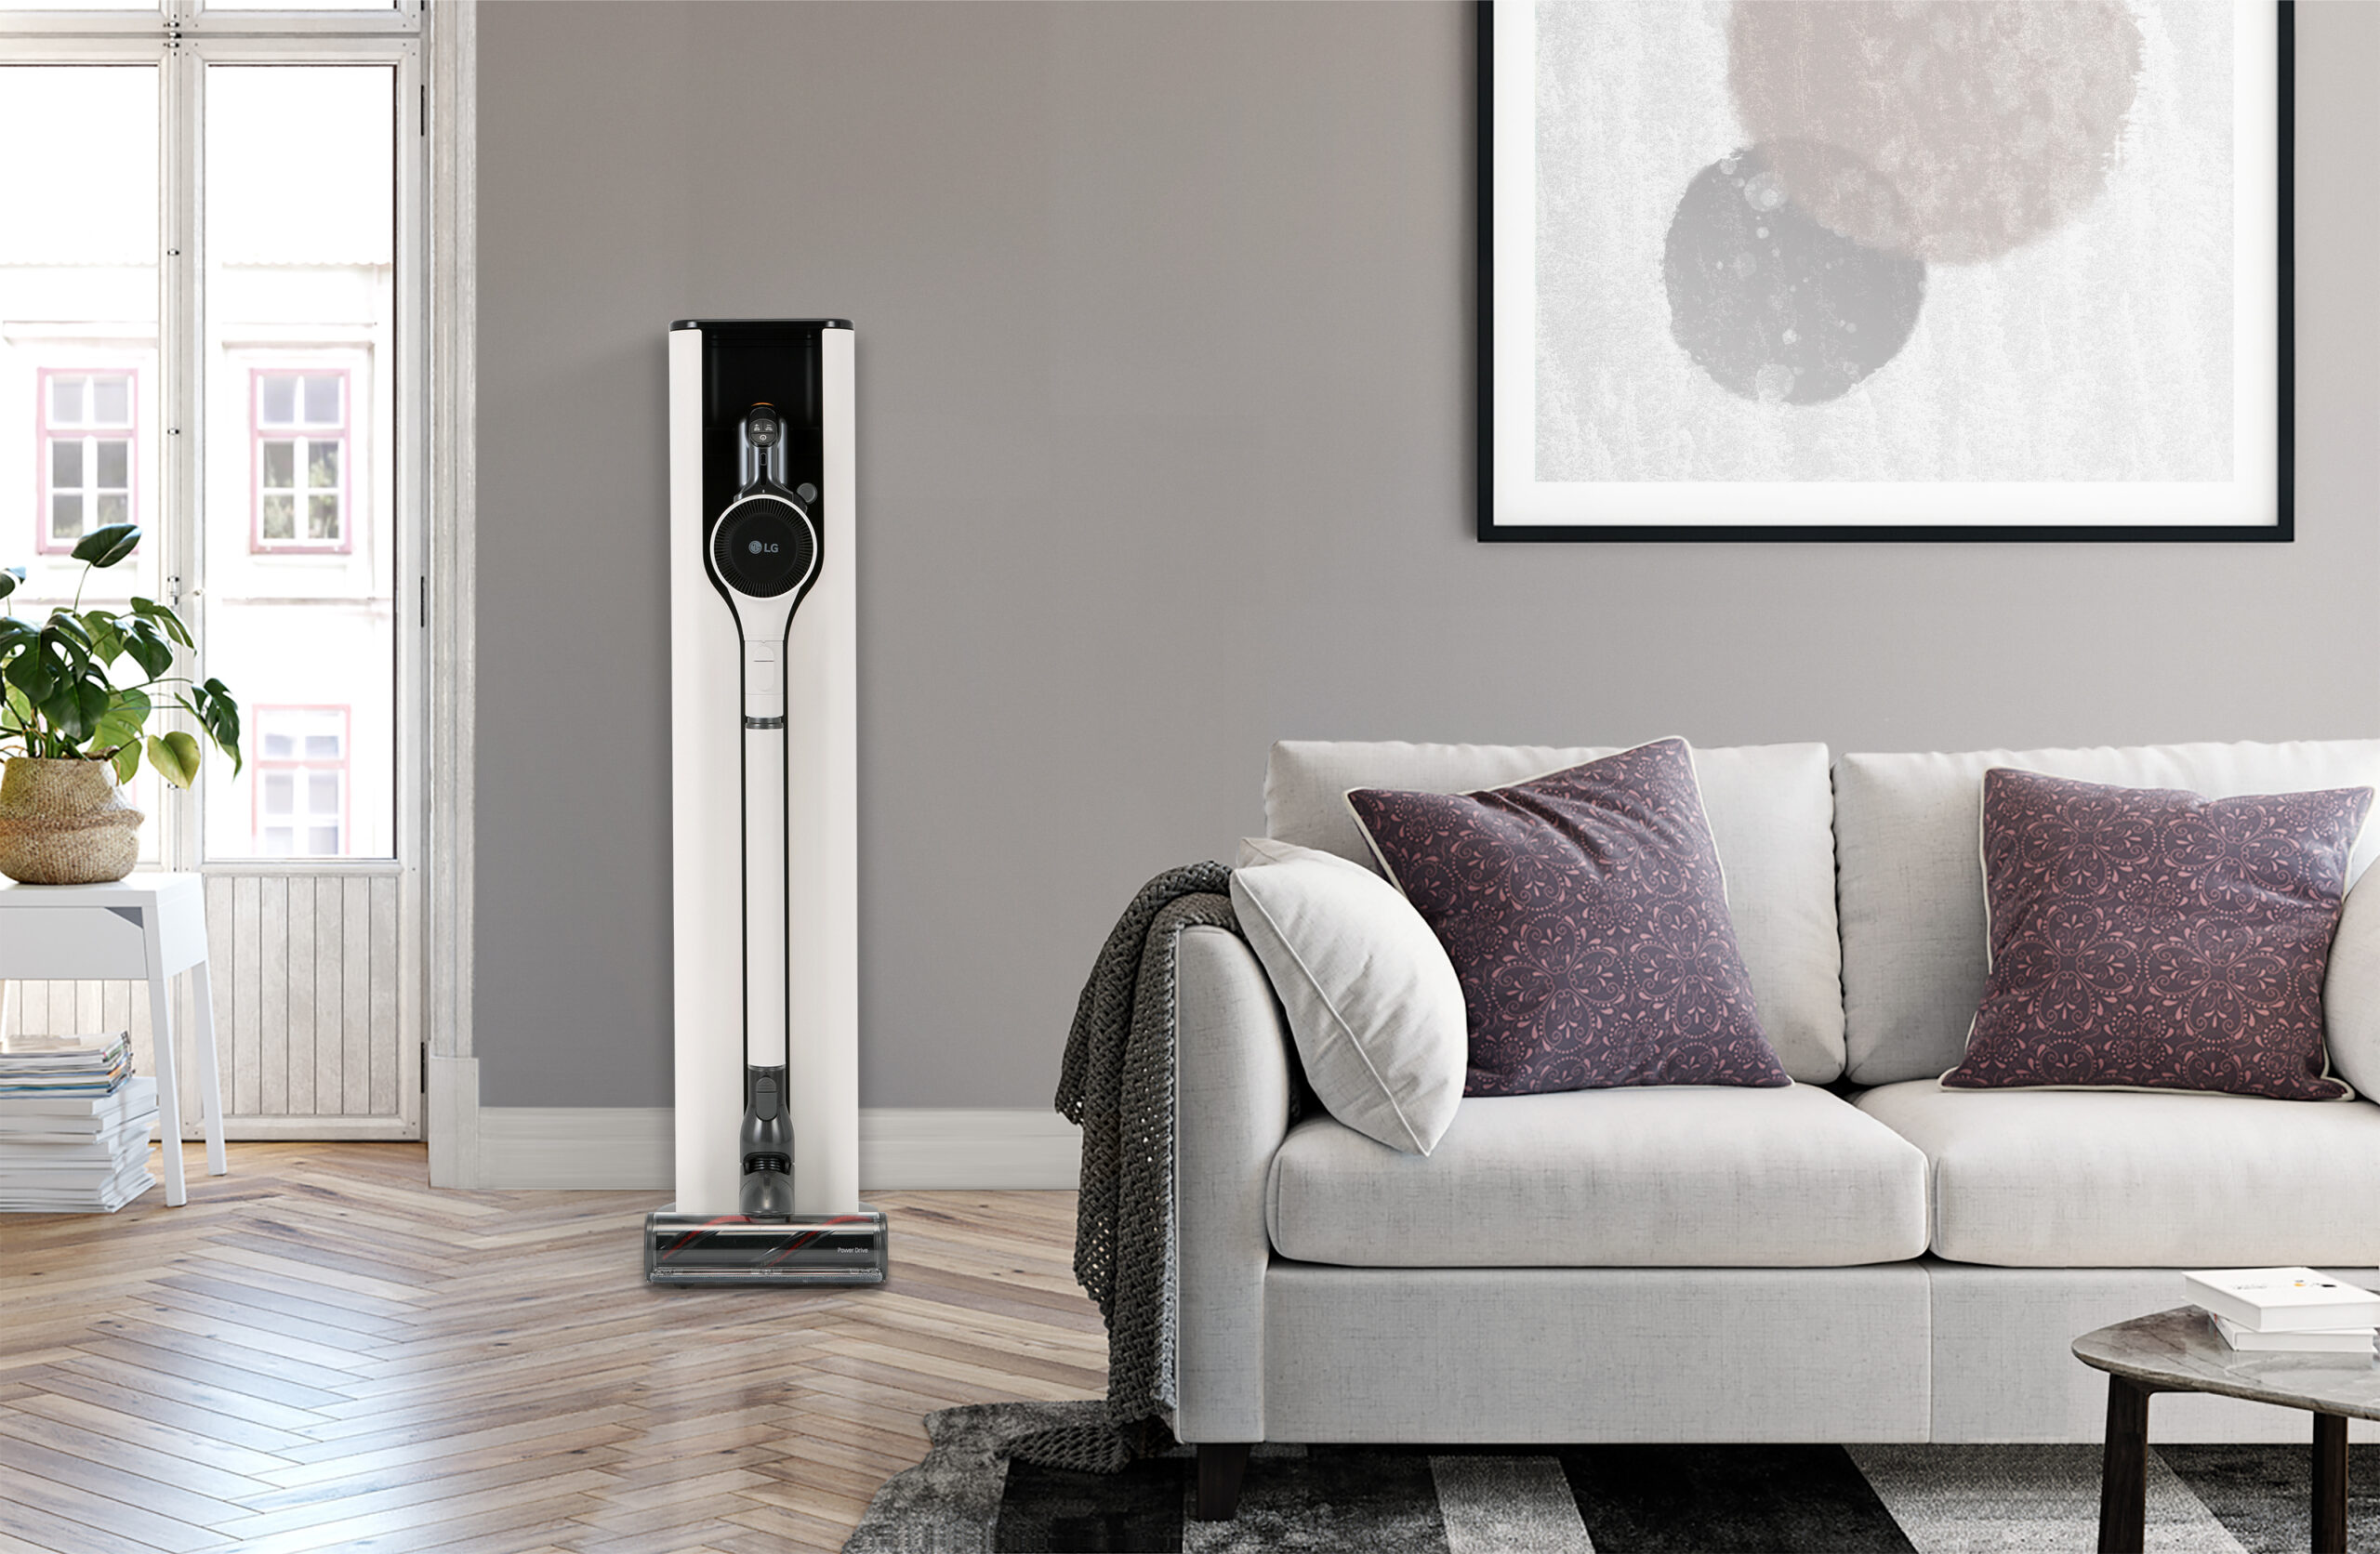 CordZero A9 Kompressor+ is placed on a charging station in the livingroom